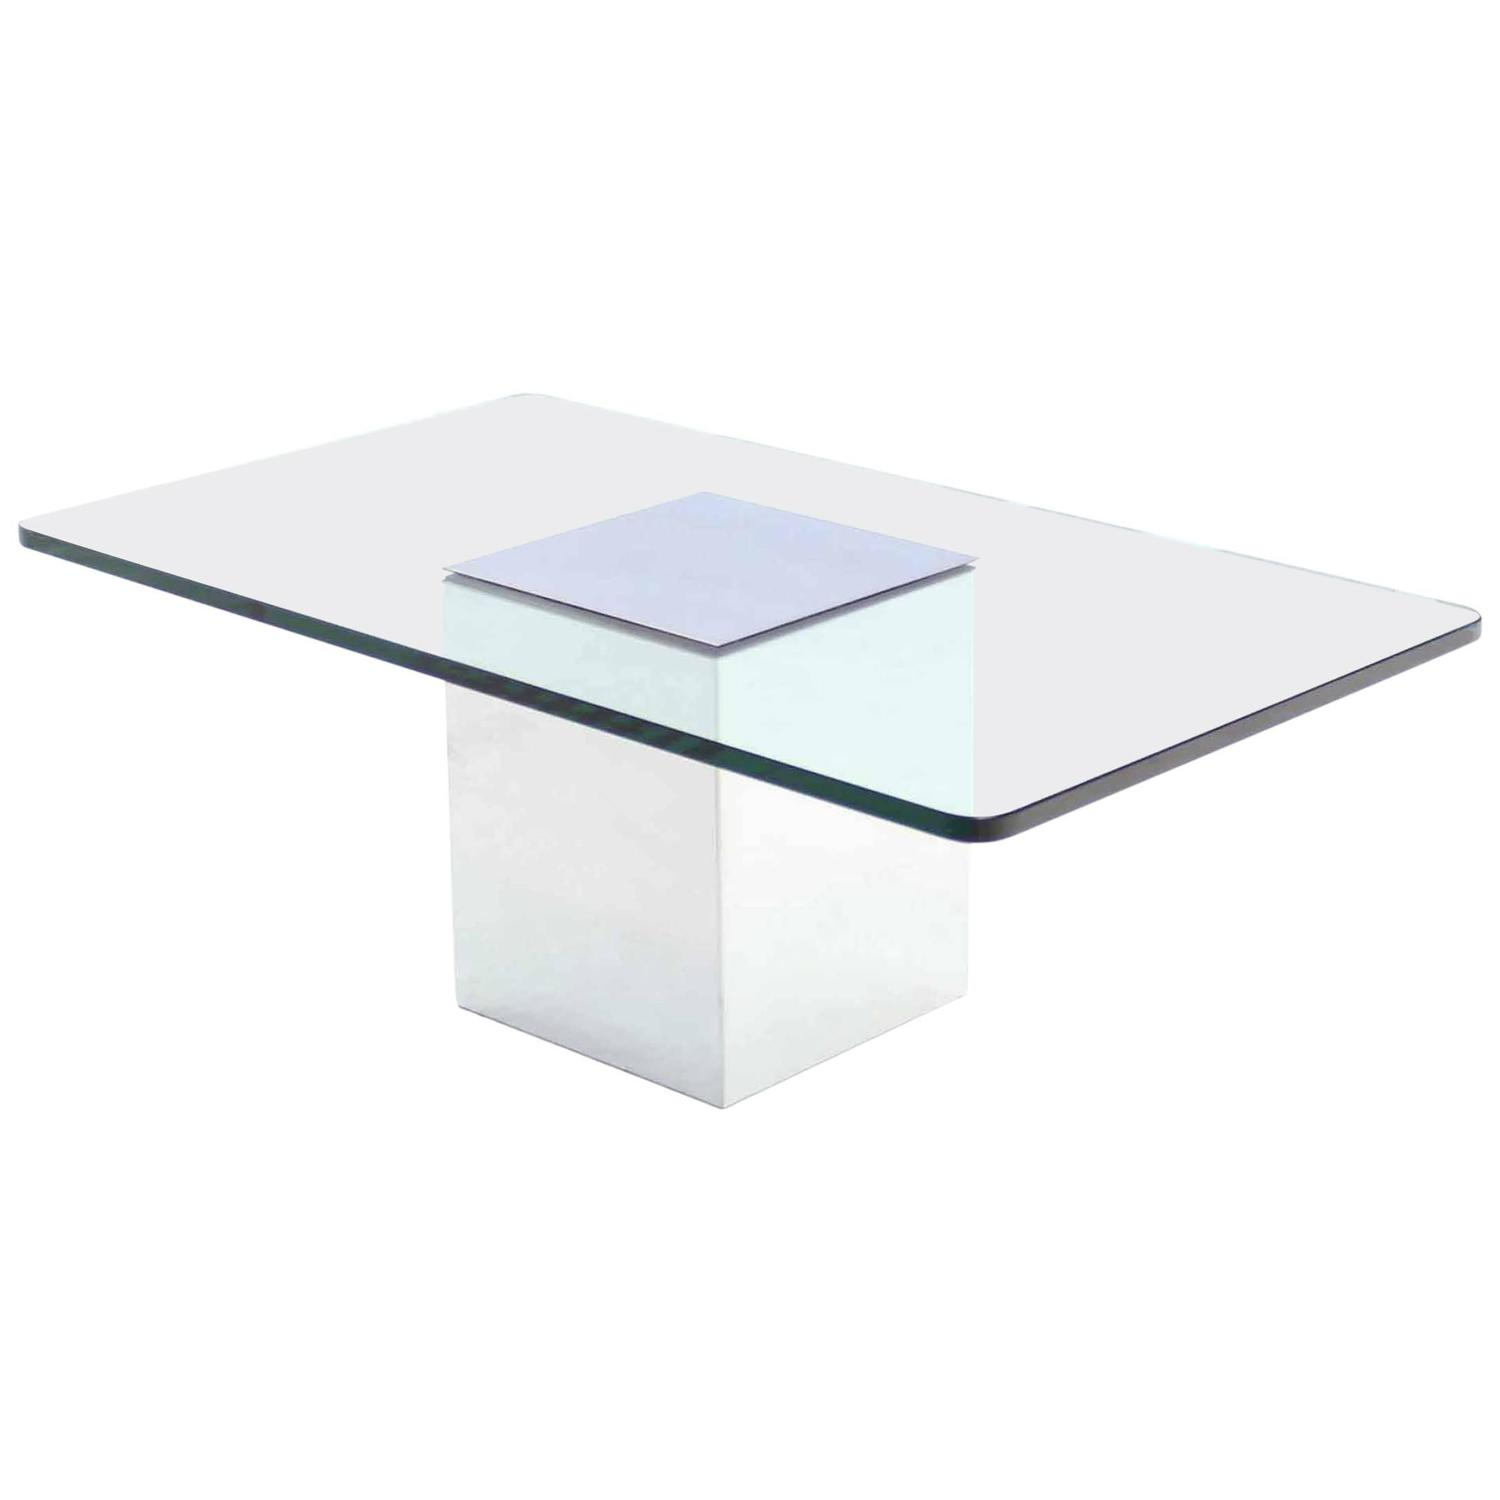 Polished steel base glass top coffee table for sale at 1stdibs Glass coffee table base